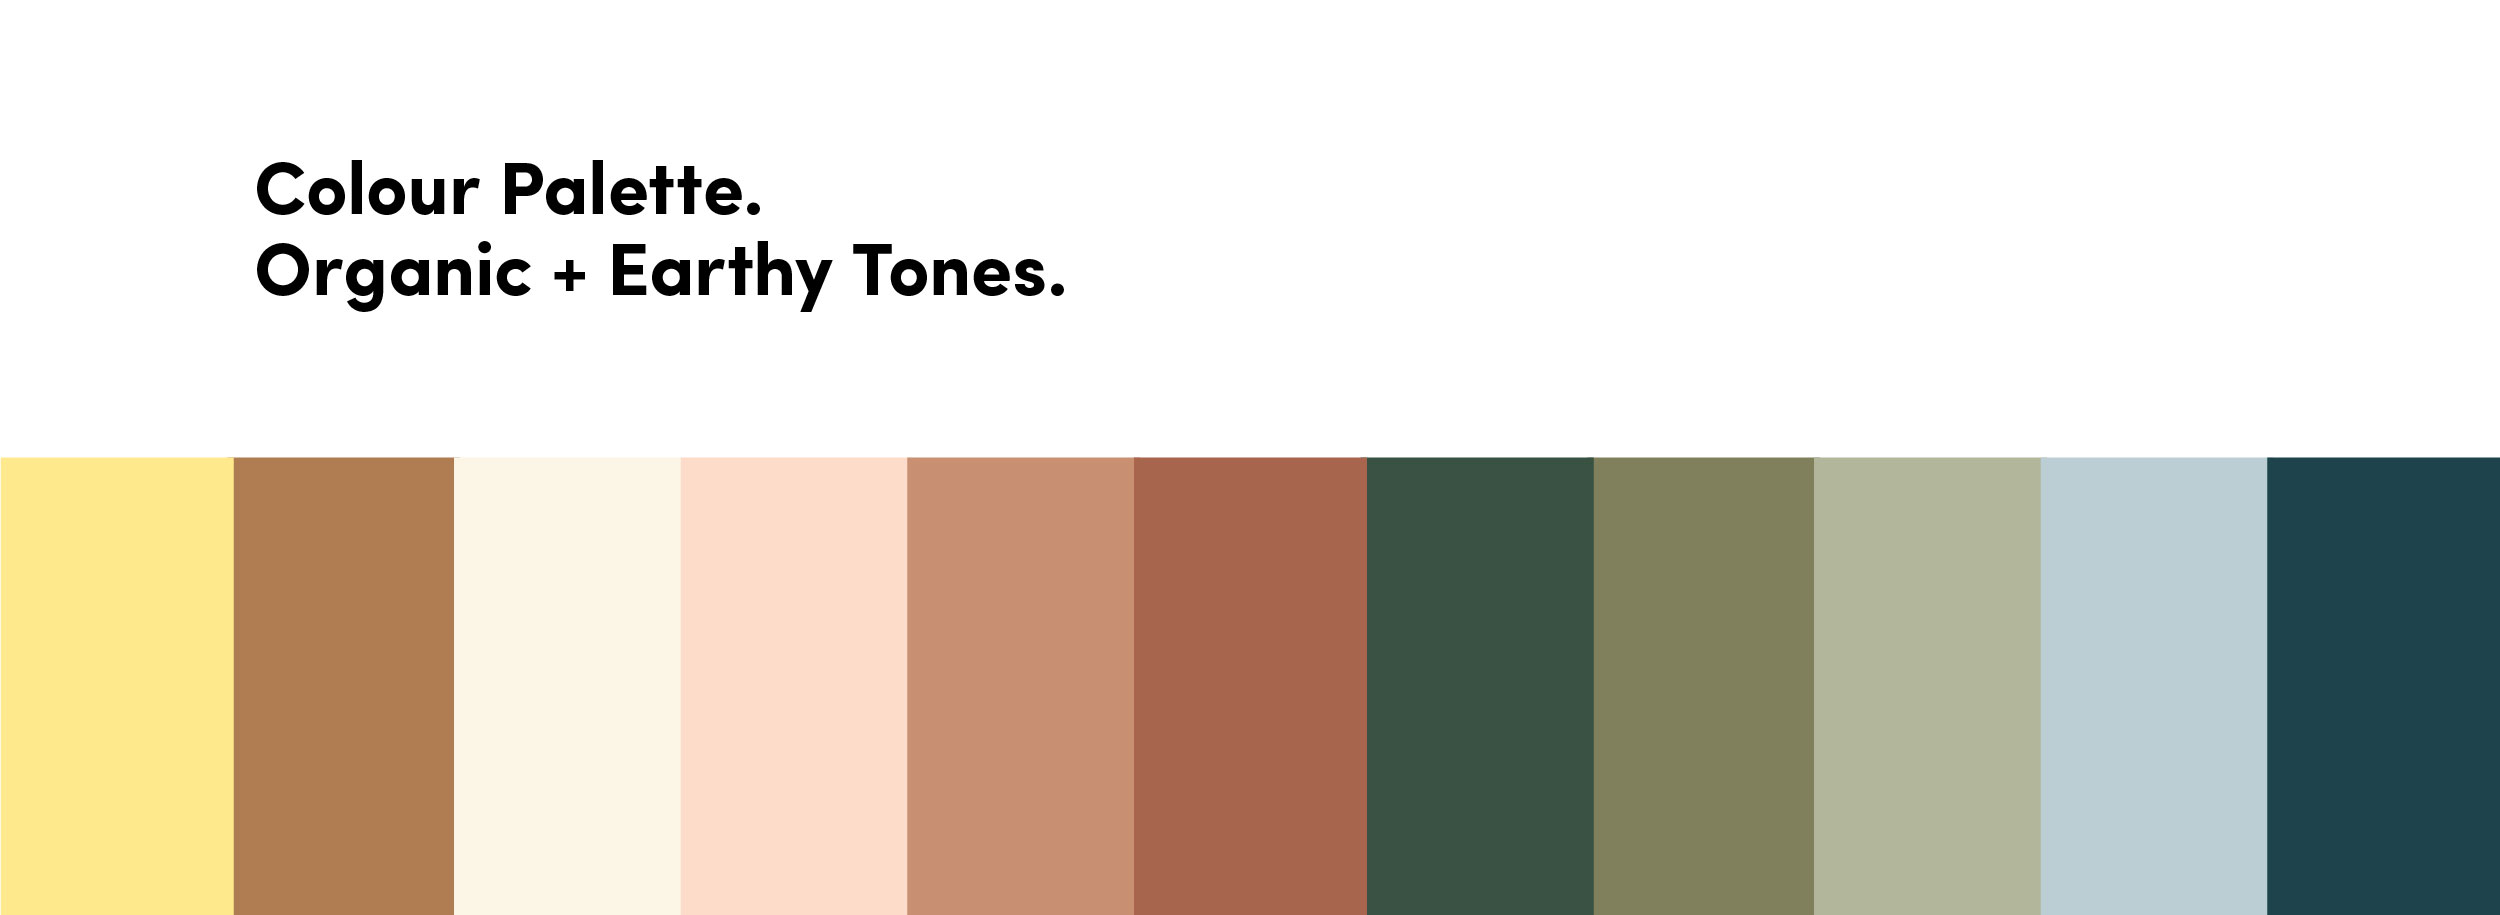 organic-earthy-colour-palette.jpg